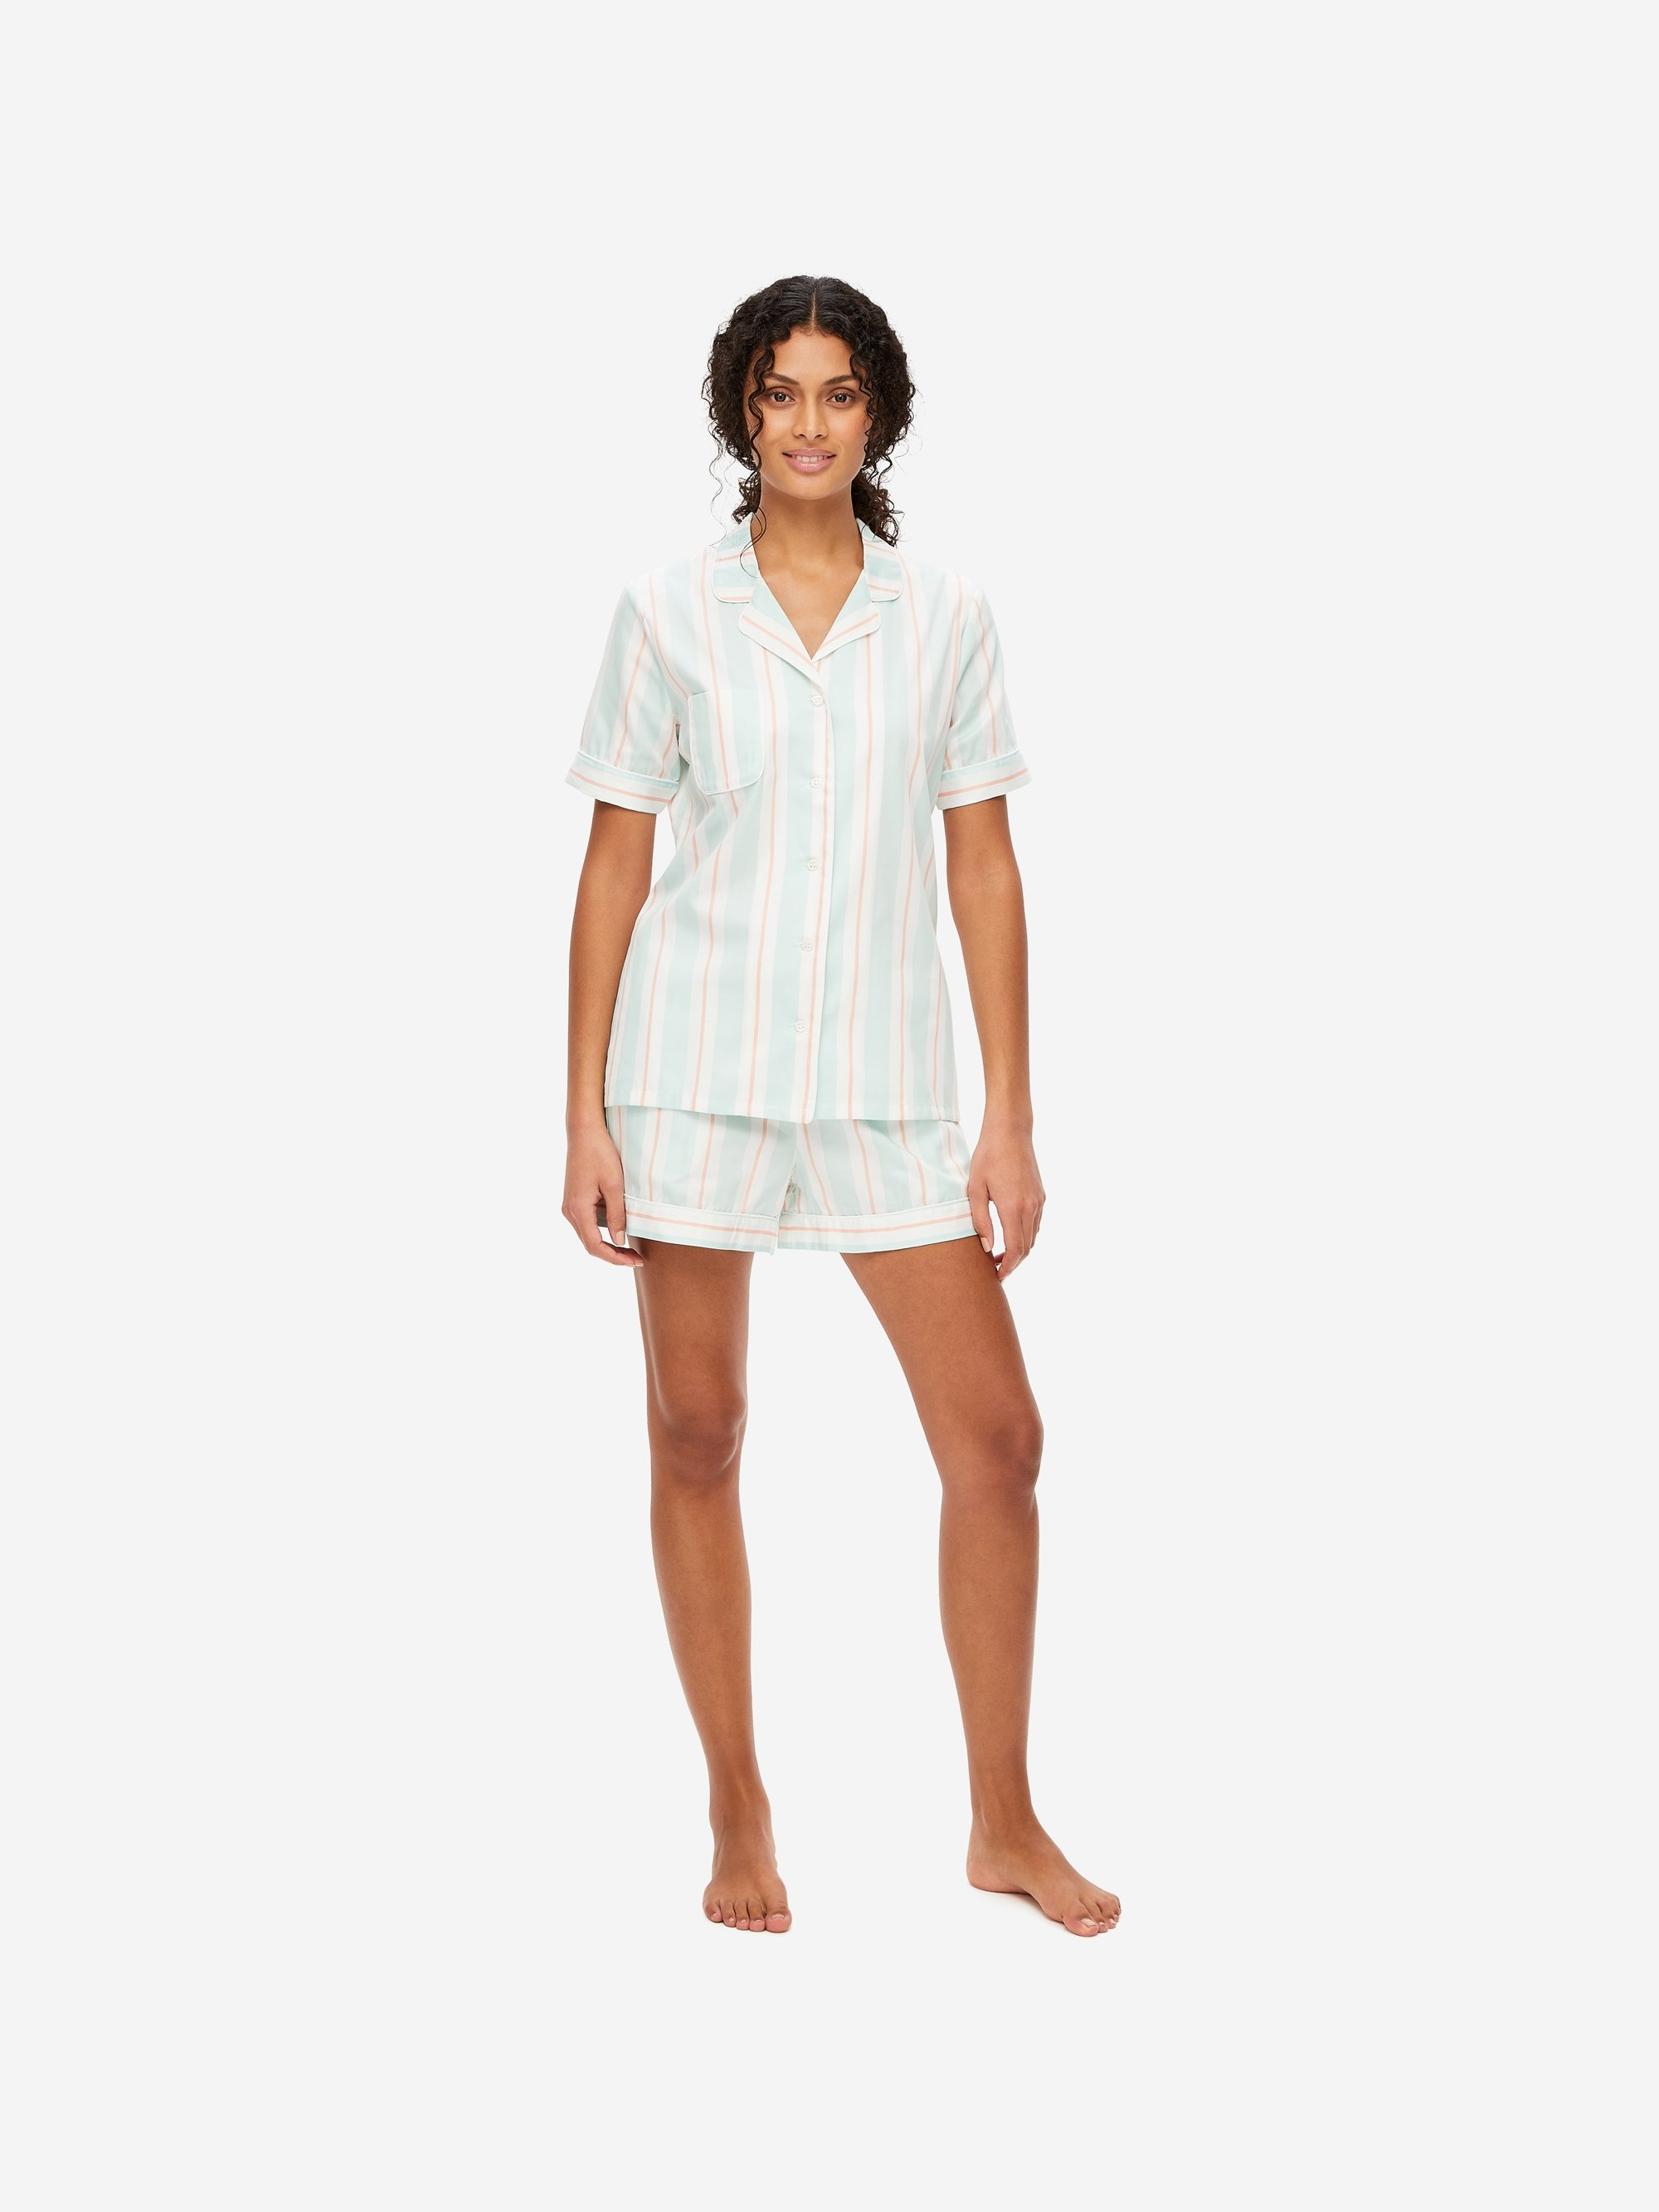 Women's Shortie Pyjamas Milly 9 Cotton Full Satin Stripe Mint